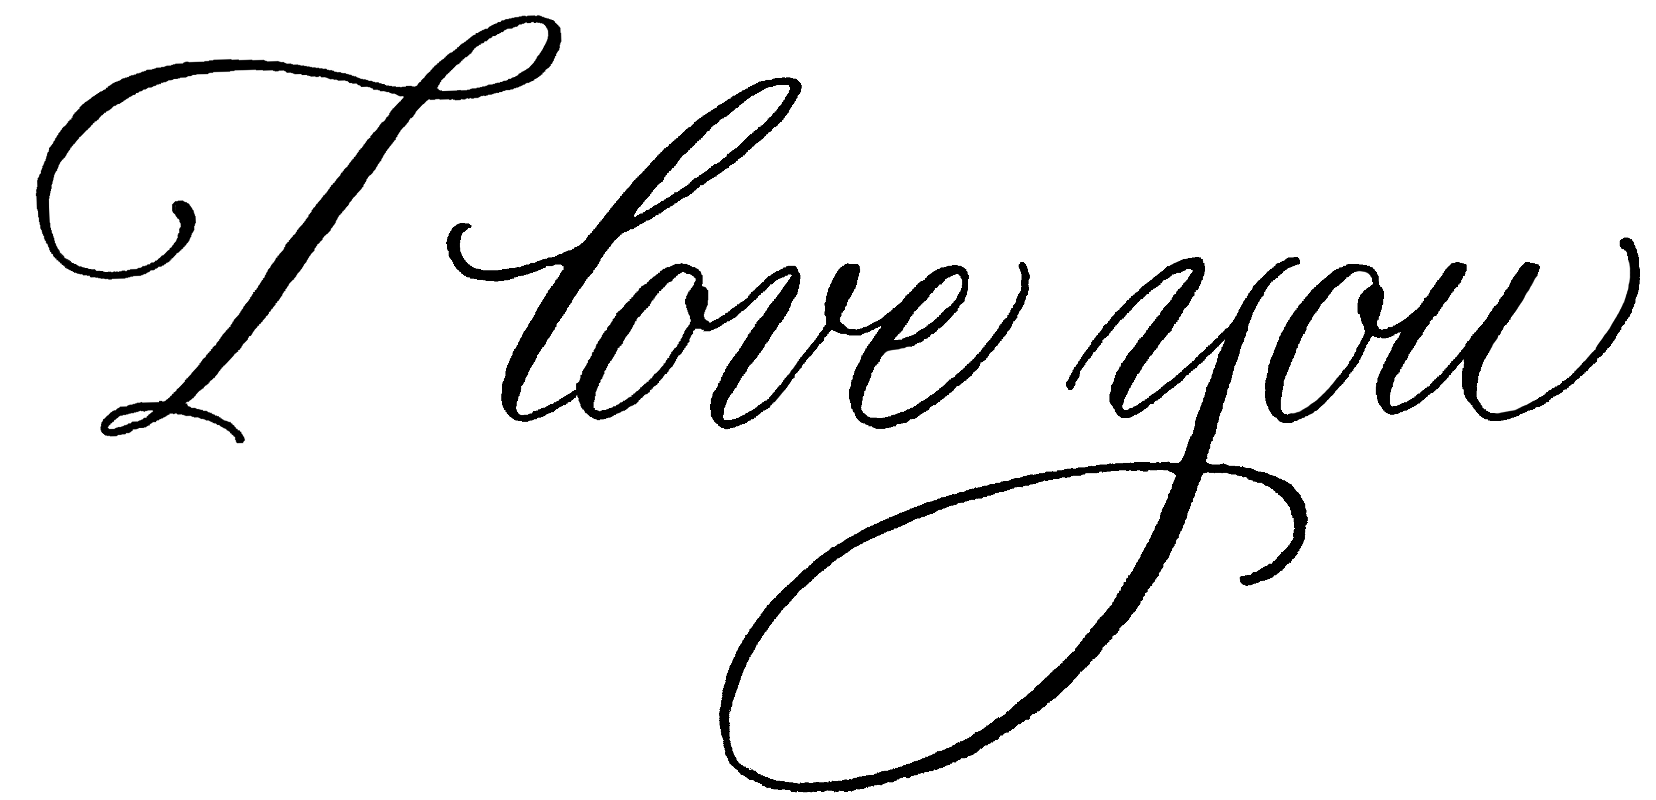 I love you sally sanders calligraphy design I love you calligraphy